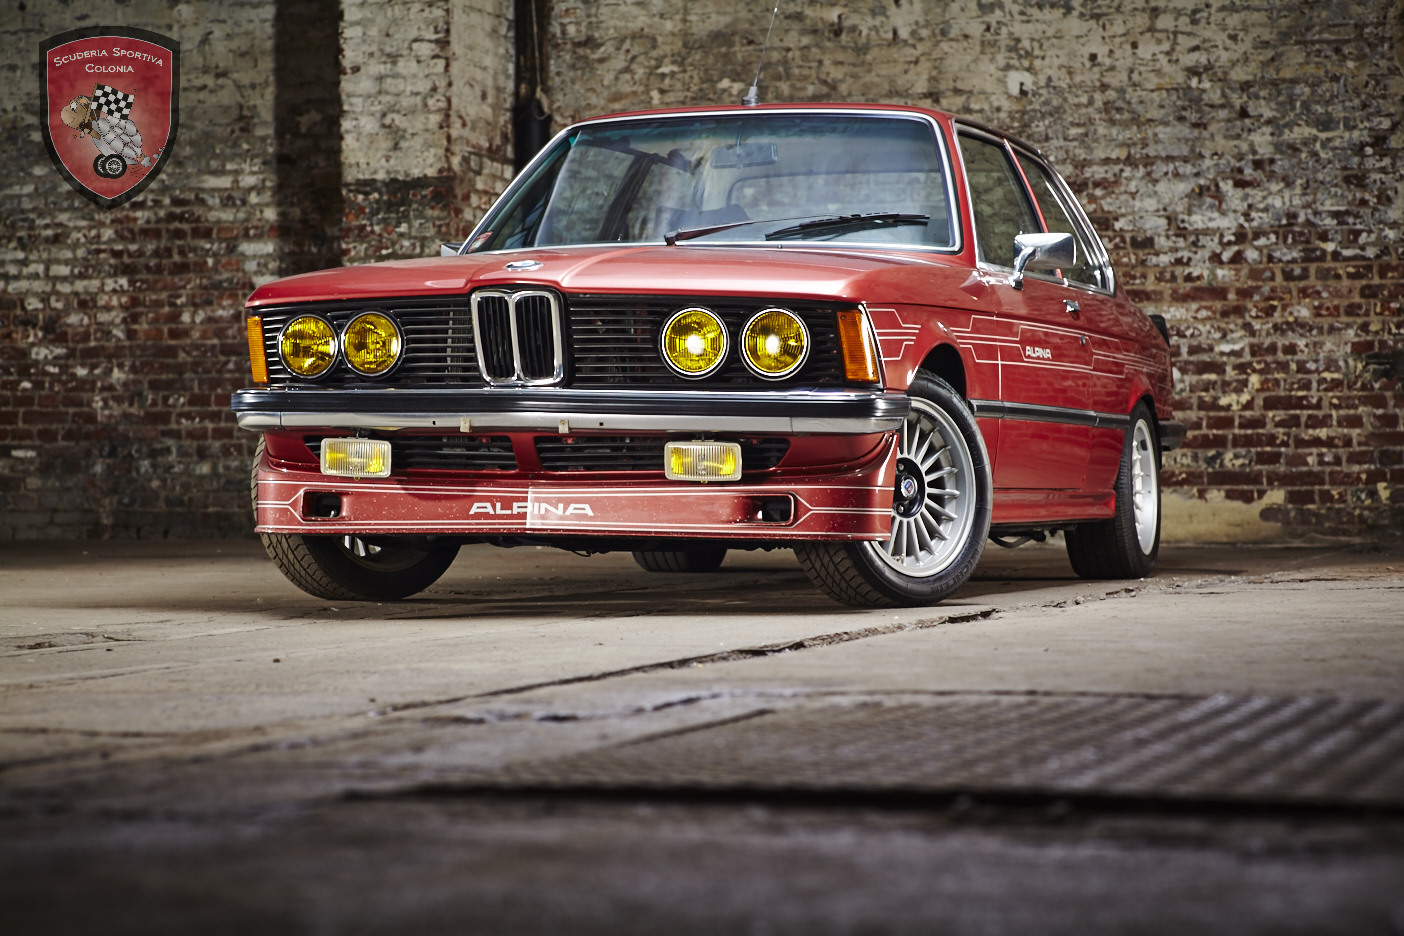 BMW 320/6 Alpina Tribute